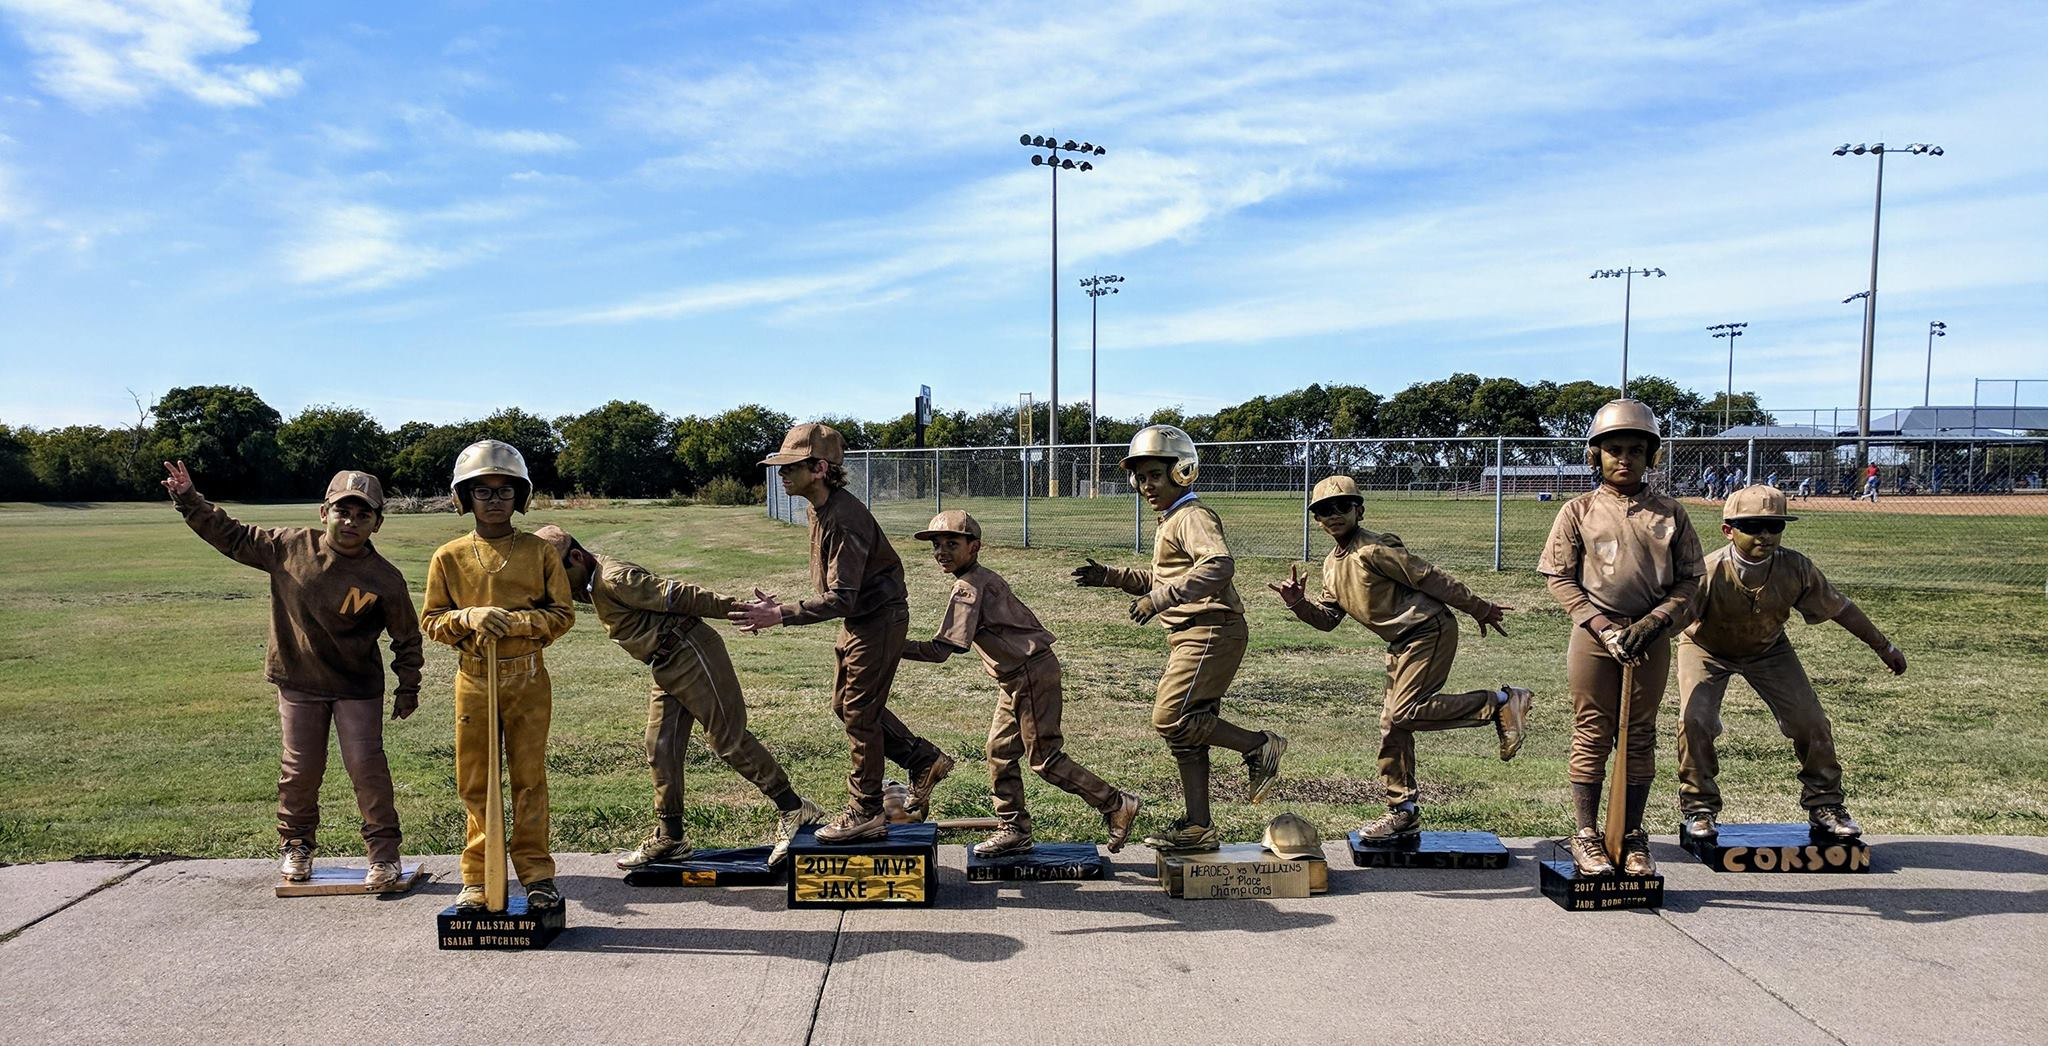 West Texas Mayhem - The team won 1st placeÂ?for best costumeÂ?at their baseball tournament